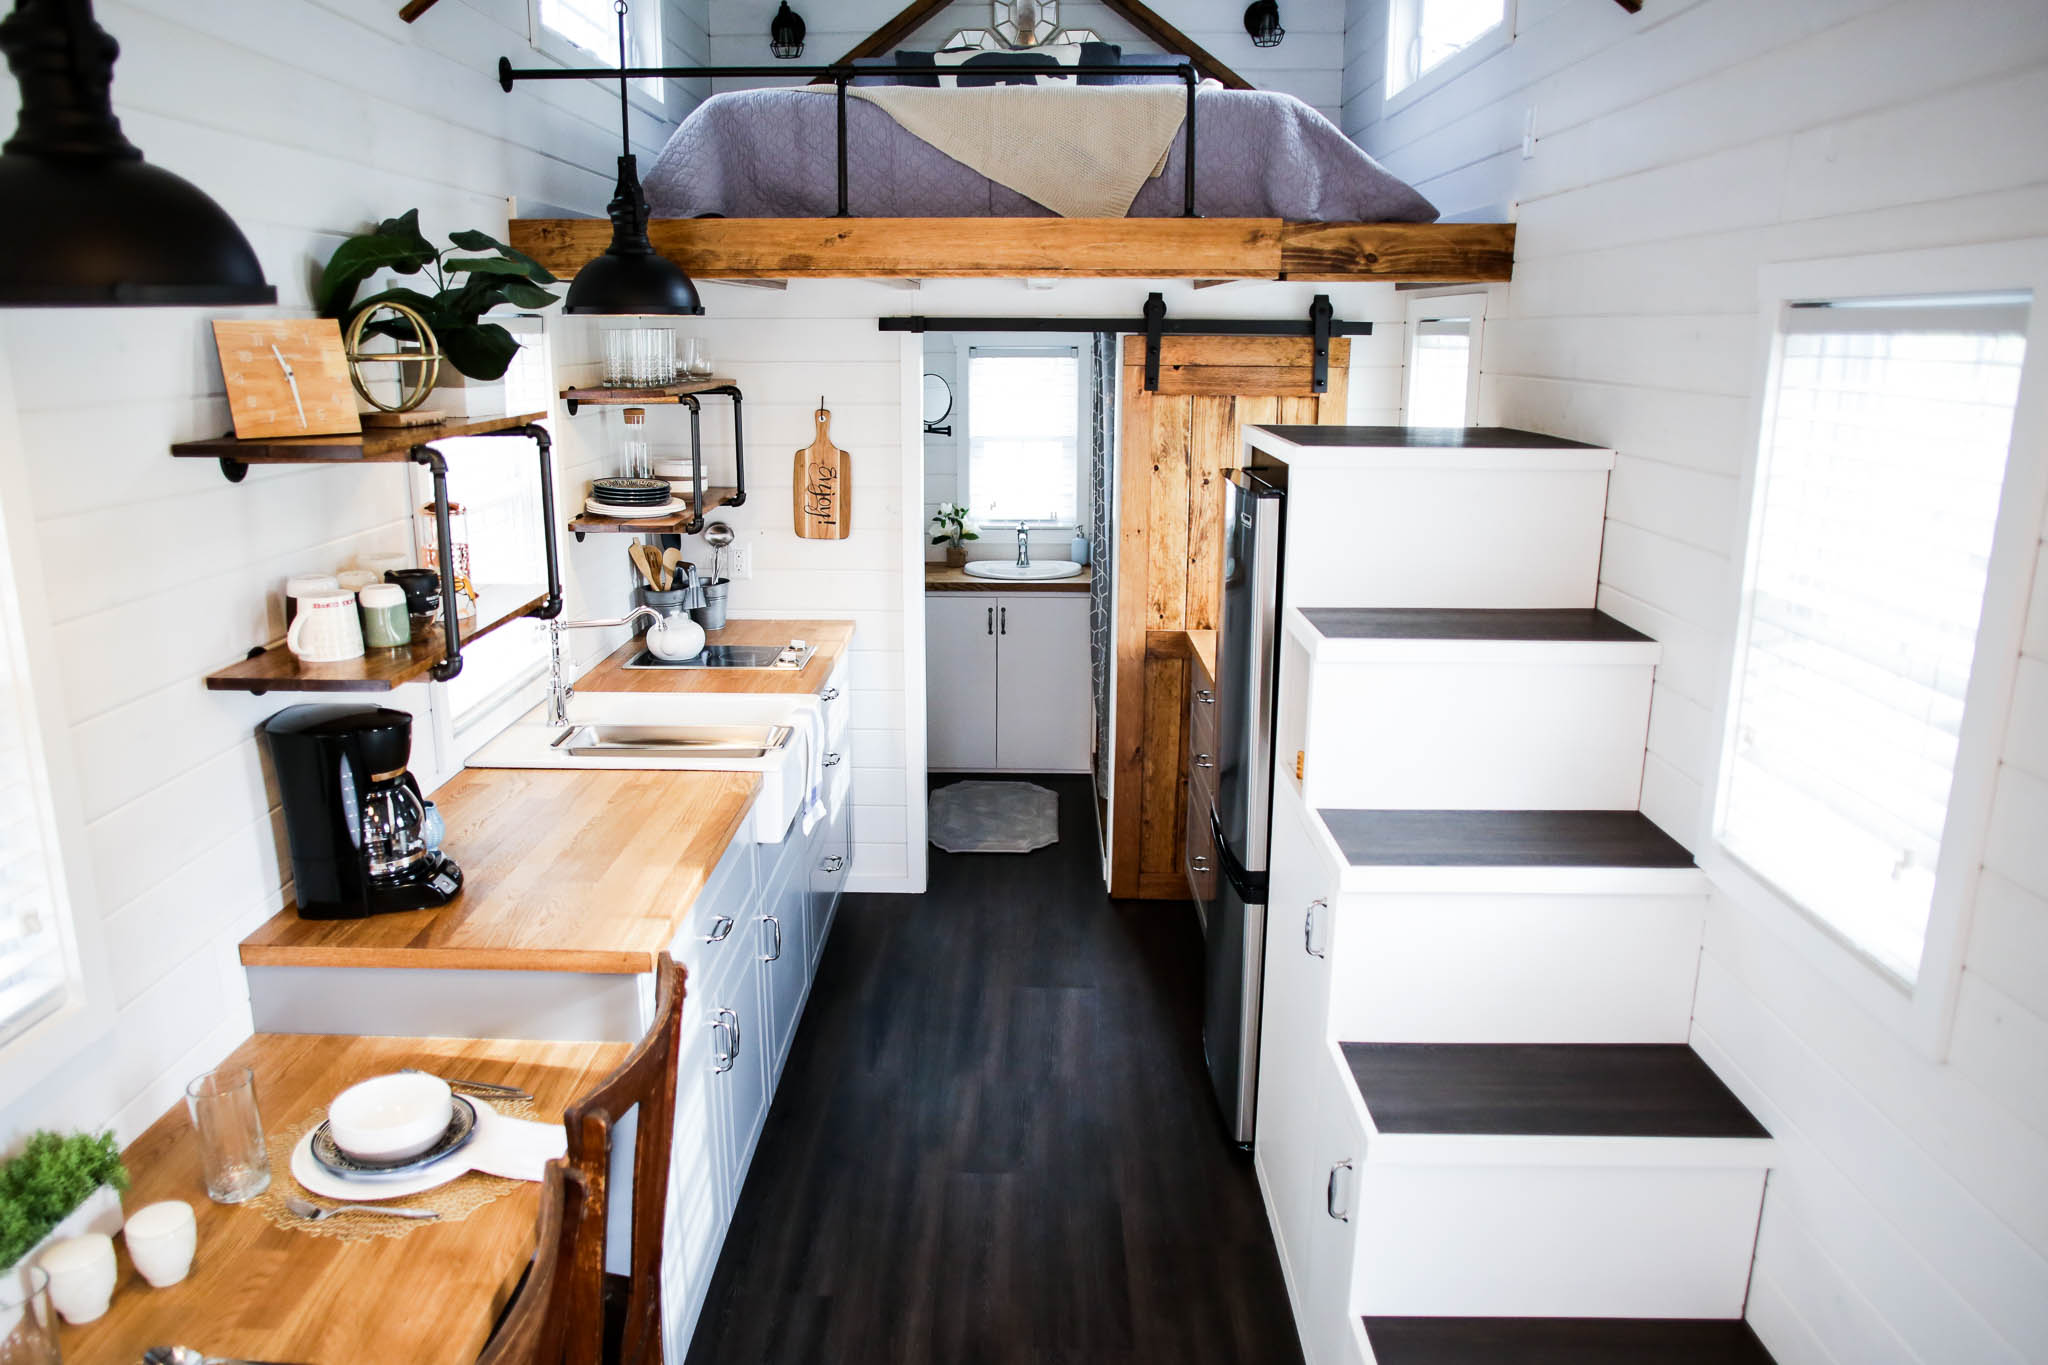 Tiny House Talks 10 Favorite Tiny Houses on Wheels of 2016